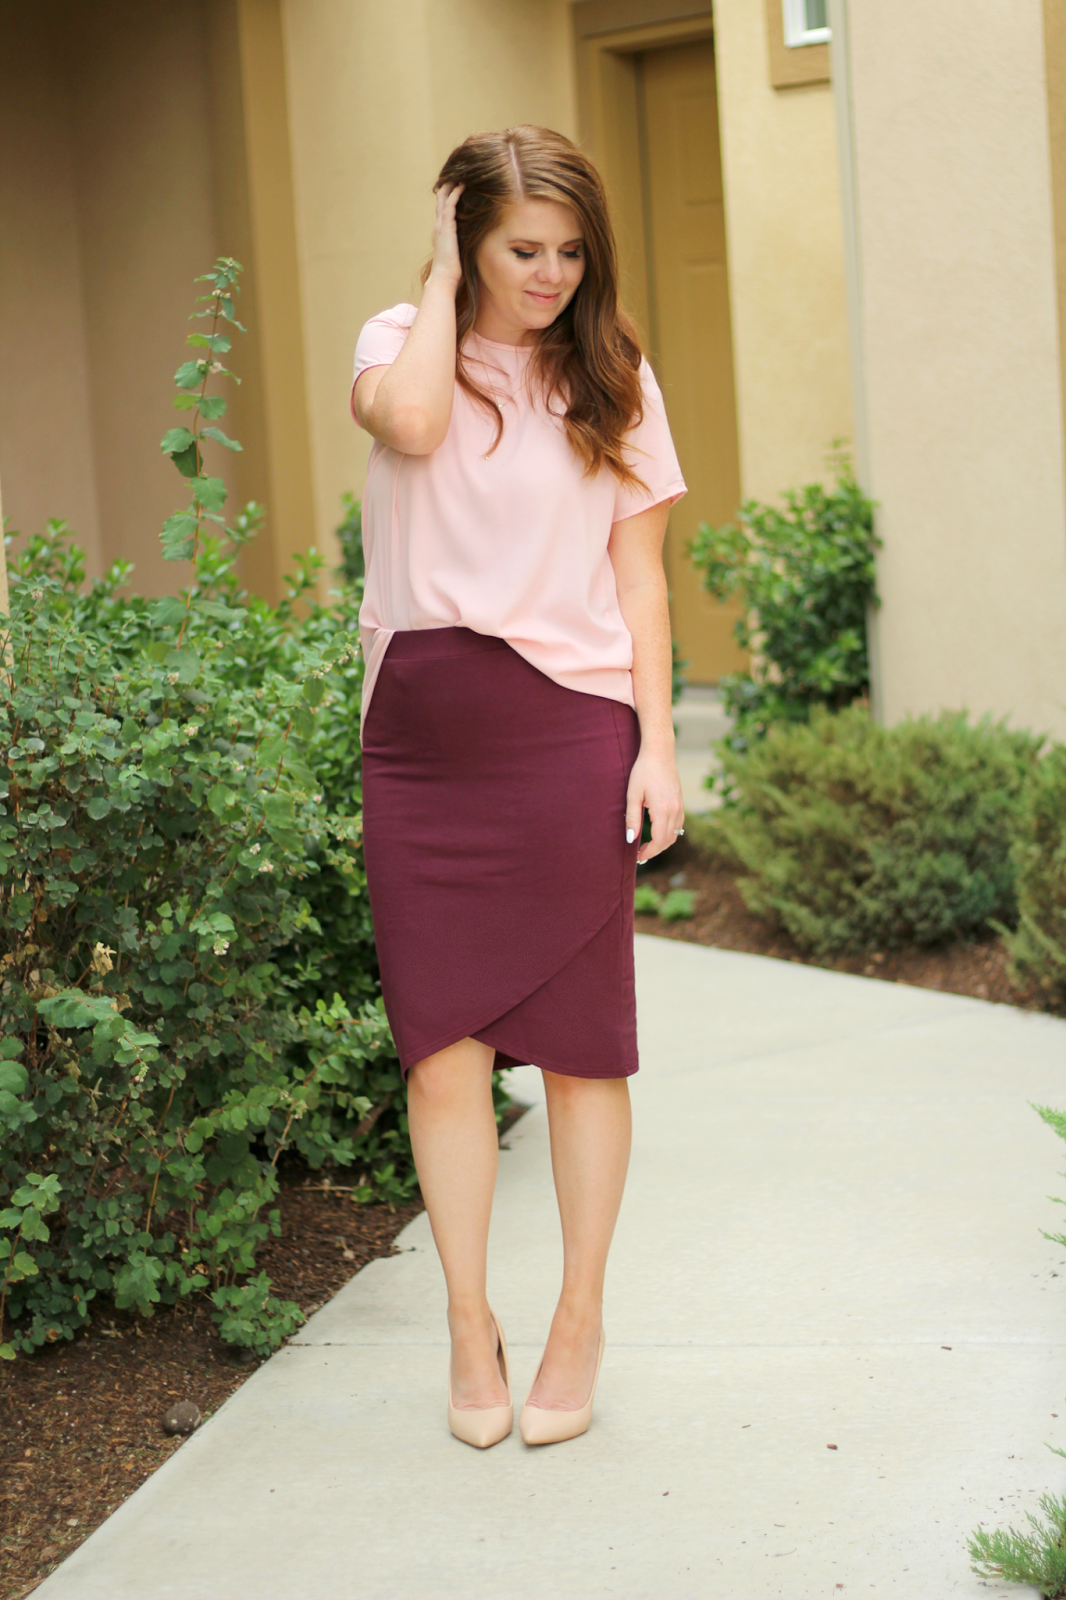 Watch 24 Flirty Outfits With Hot Pink Skirts video